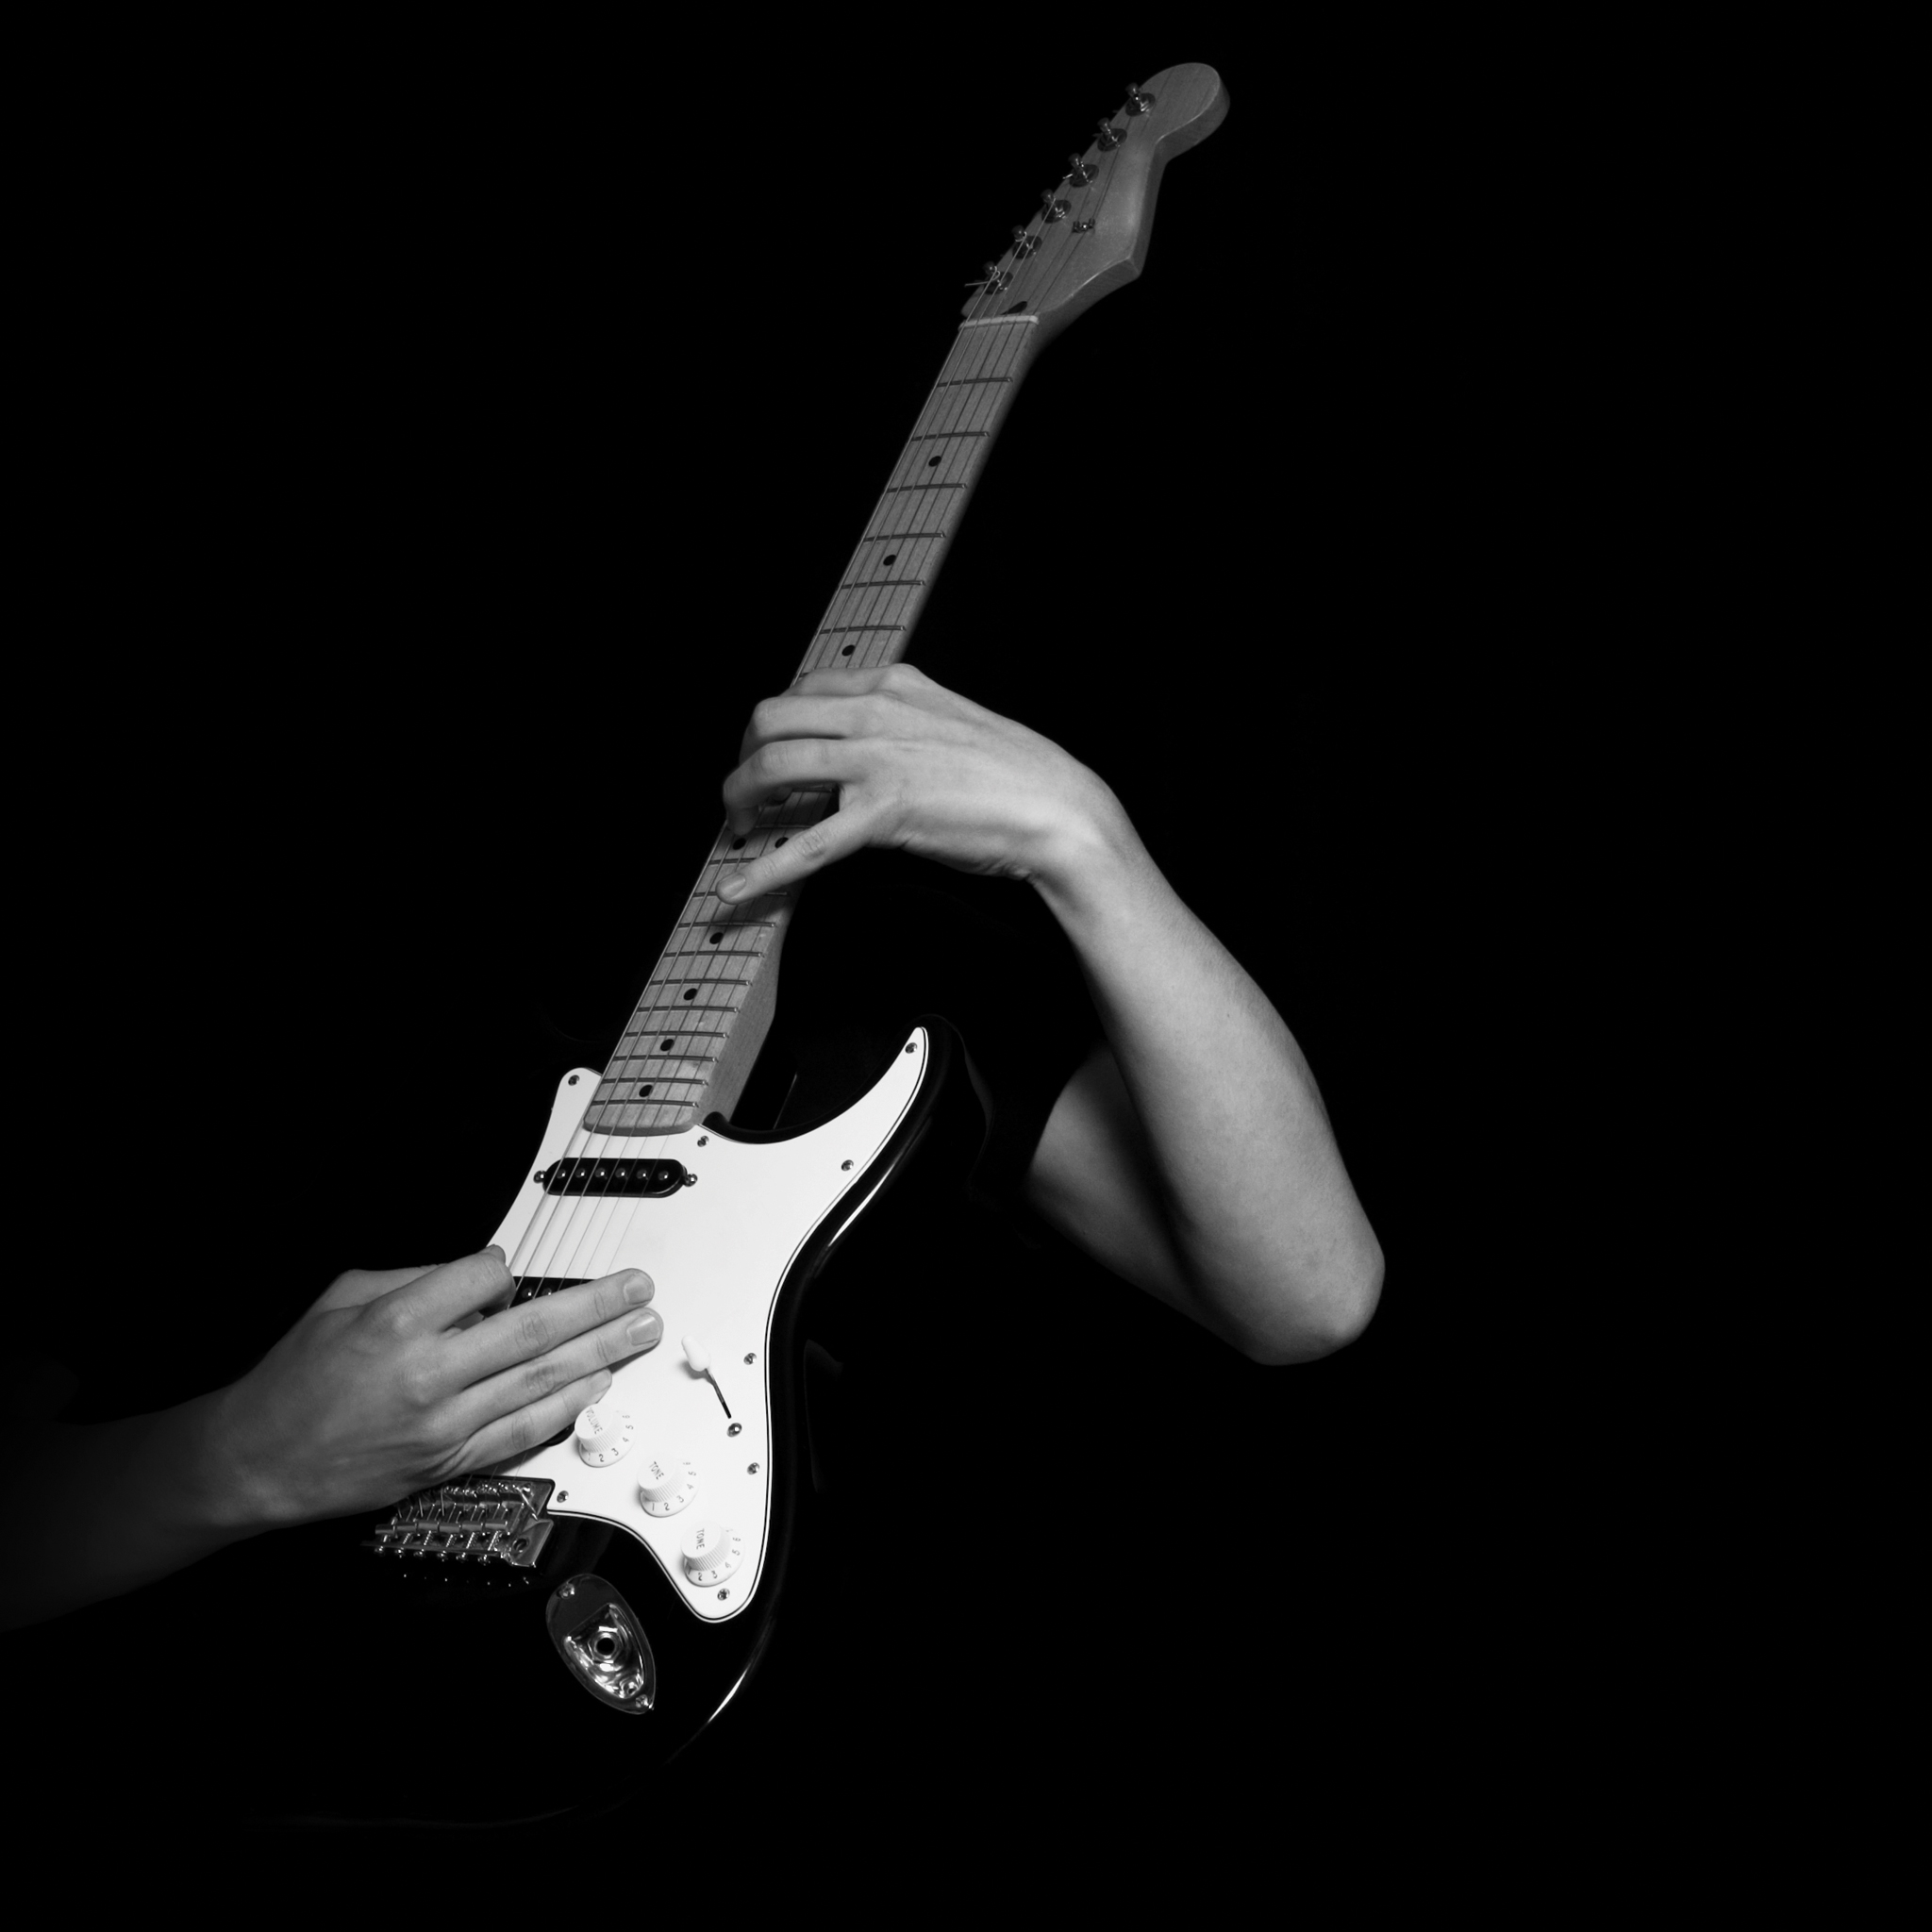 Electric Guitar Ipad Wallpaper For Iphone X 8 7 6 Free